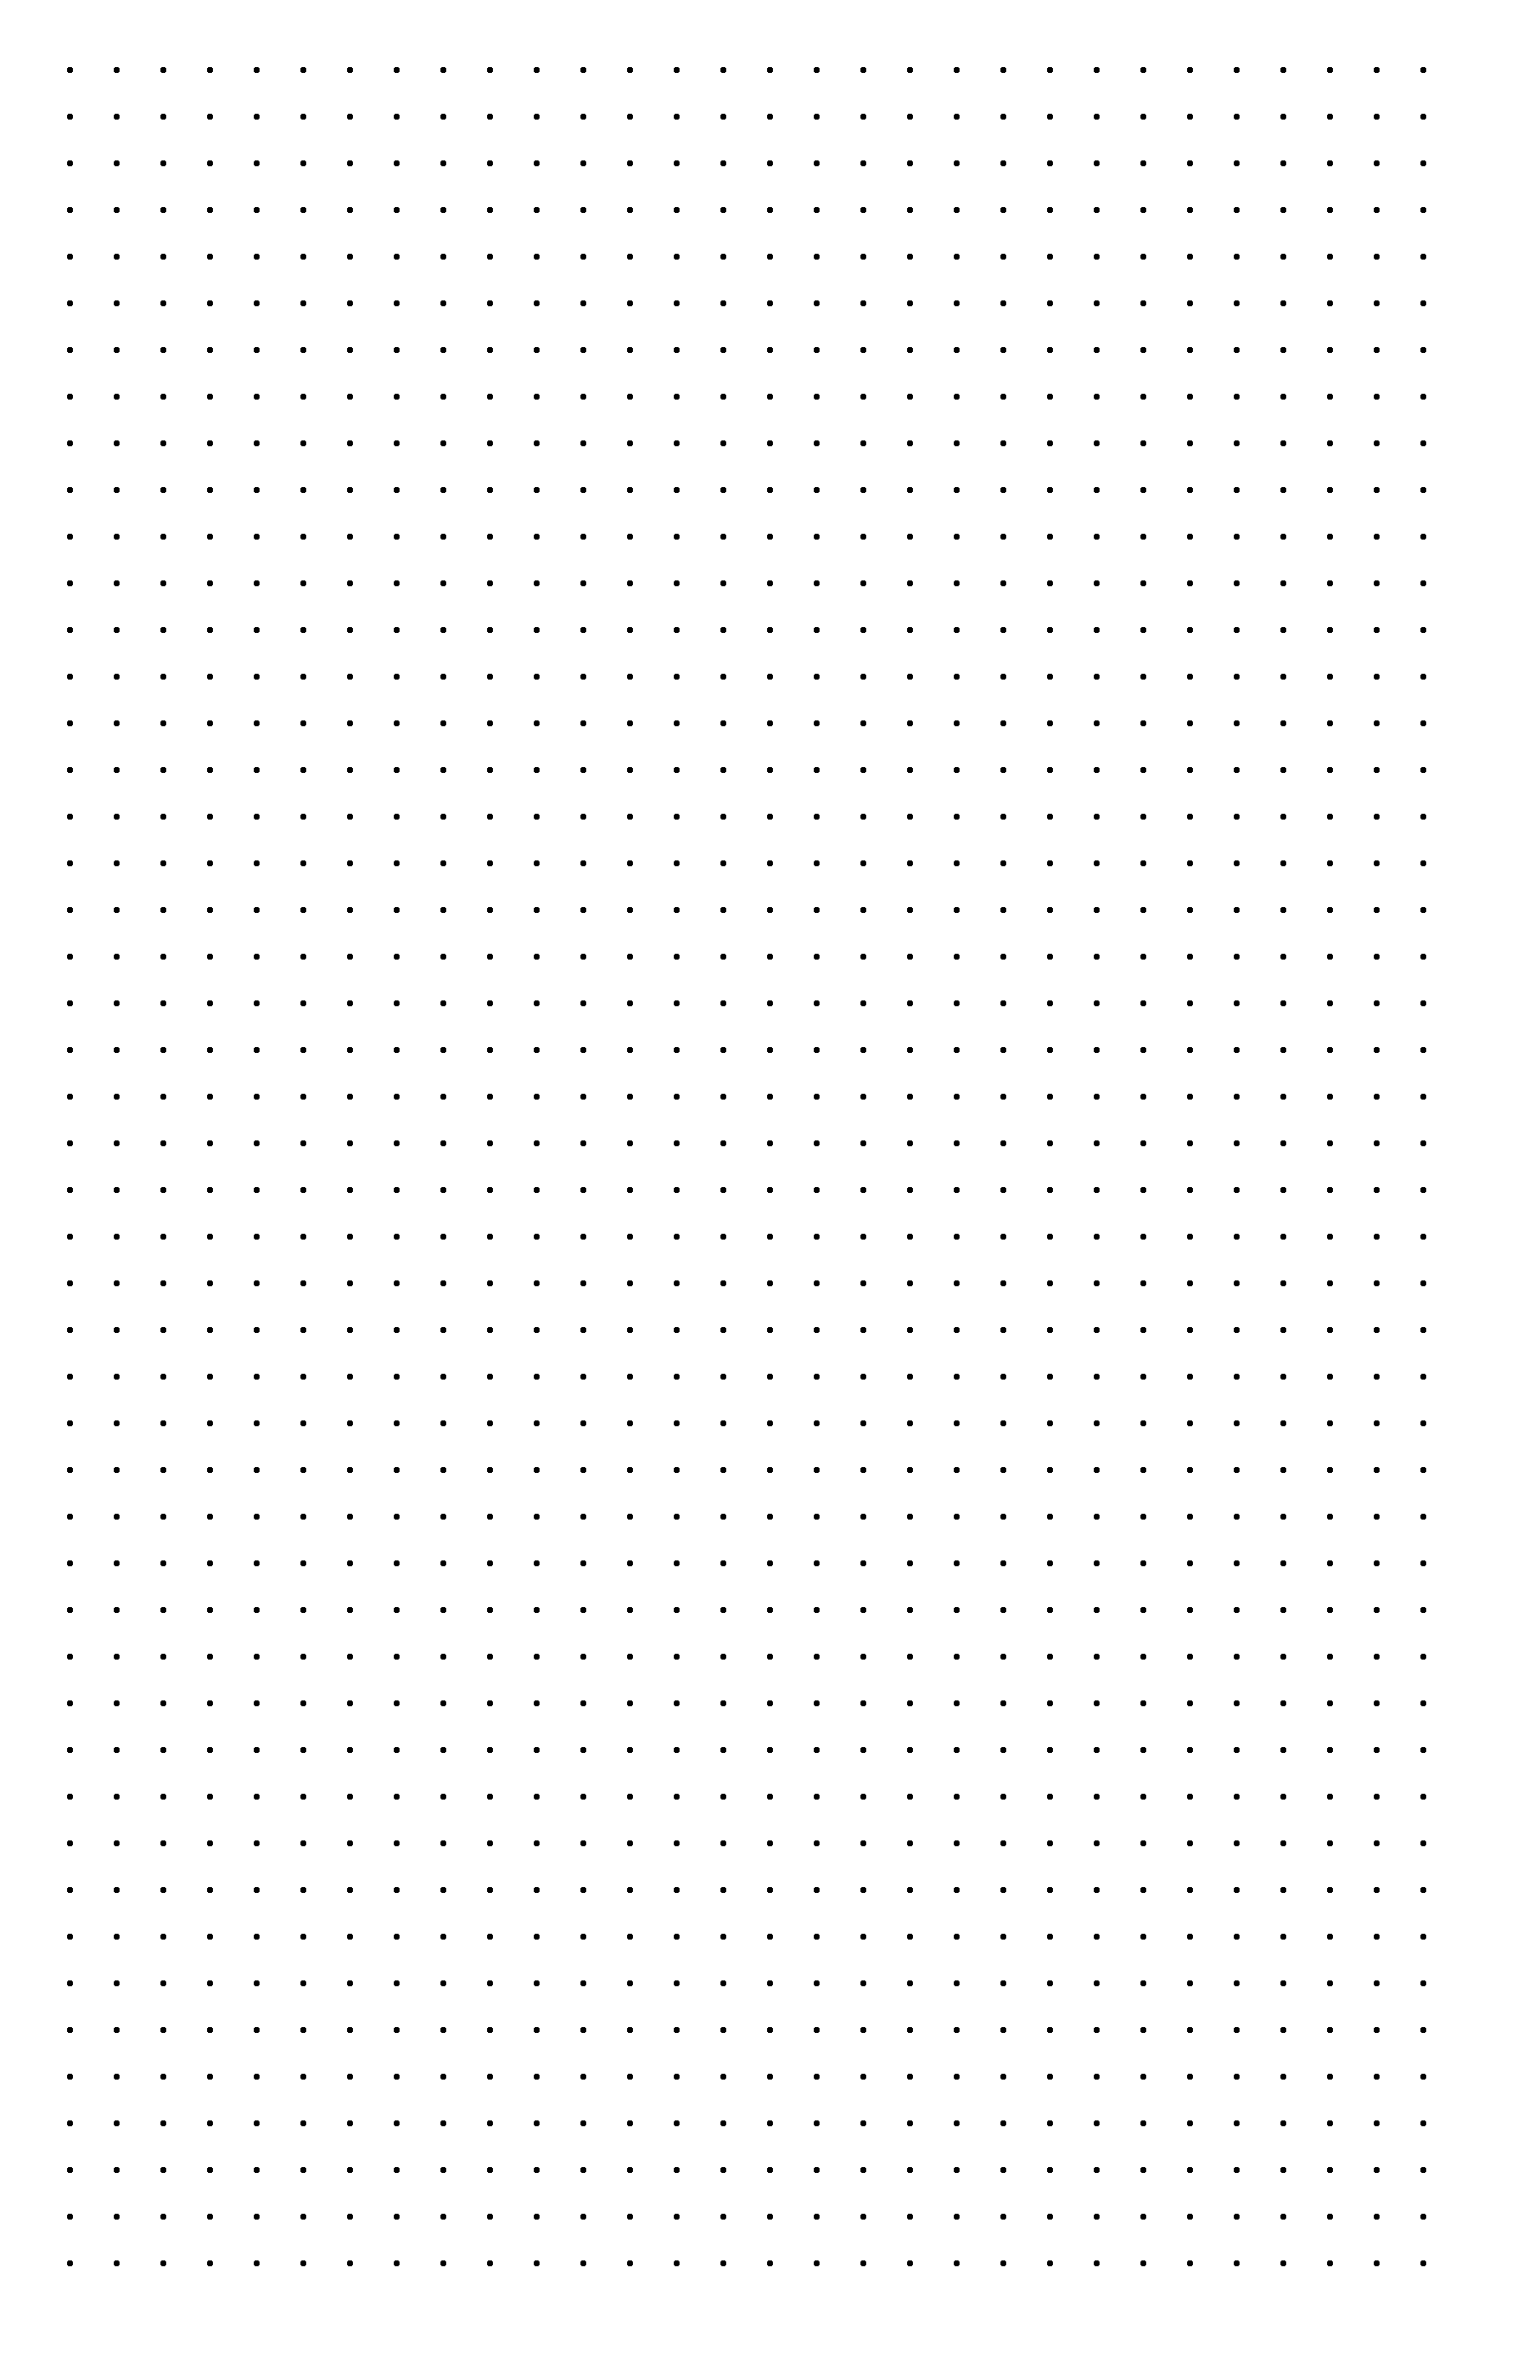 Dot Paper With Three Dots Per Inch On Ledger Sized Paper